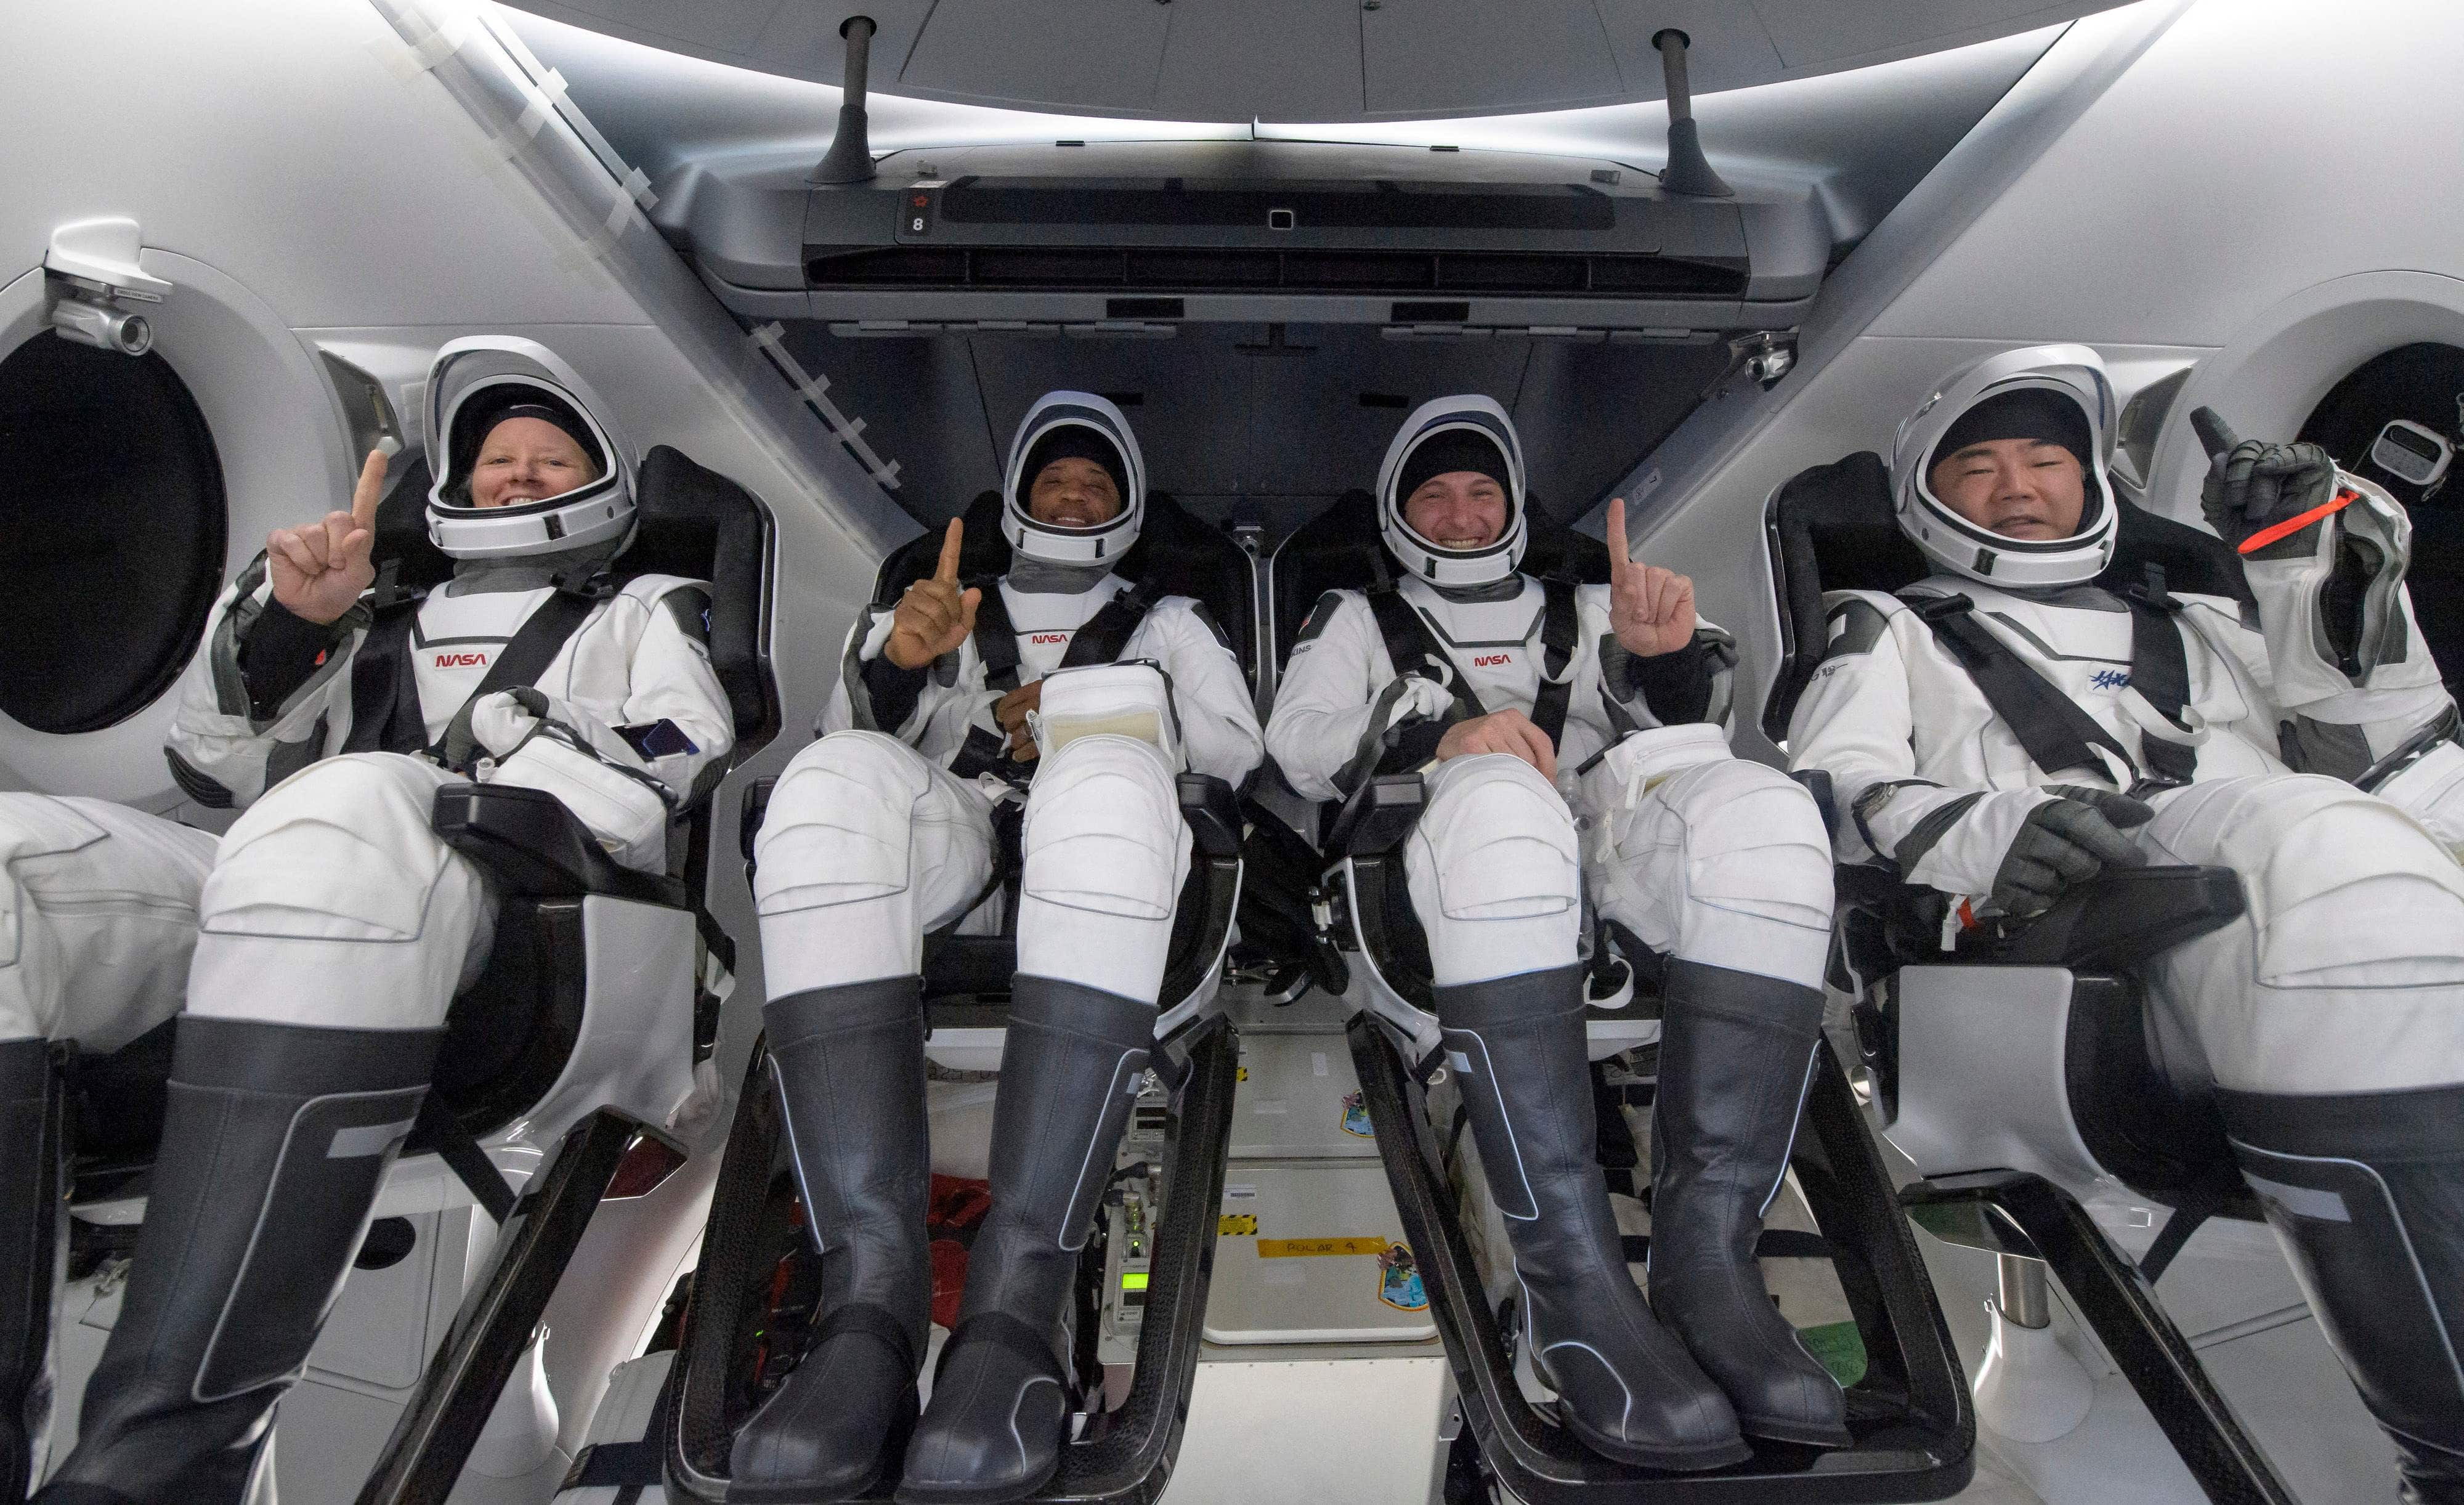 NASA astronauts (from left) Shannon Walker, Victor Glover, Mike Hopkins, and Japan Aerospace Exploration Agency (JAXA) astronaut Soichi Noguchi, inside the SpaceX Crew Dragon Resilience spacecraft onboard the SpaceX GO Navigator recovery ship after landing in the Gulf of Mexico off the coast of Panama City, Florida.